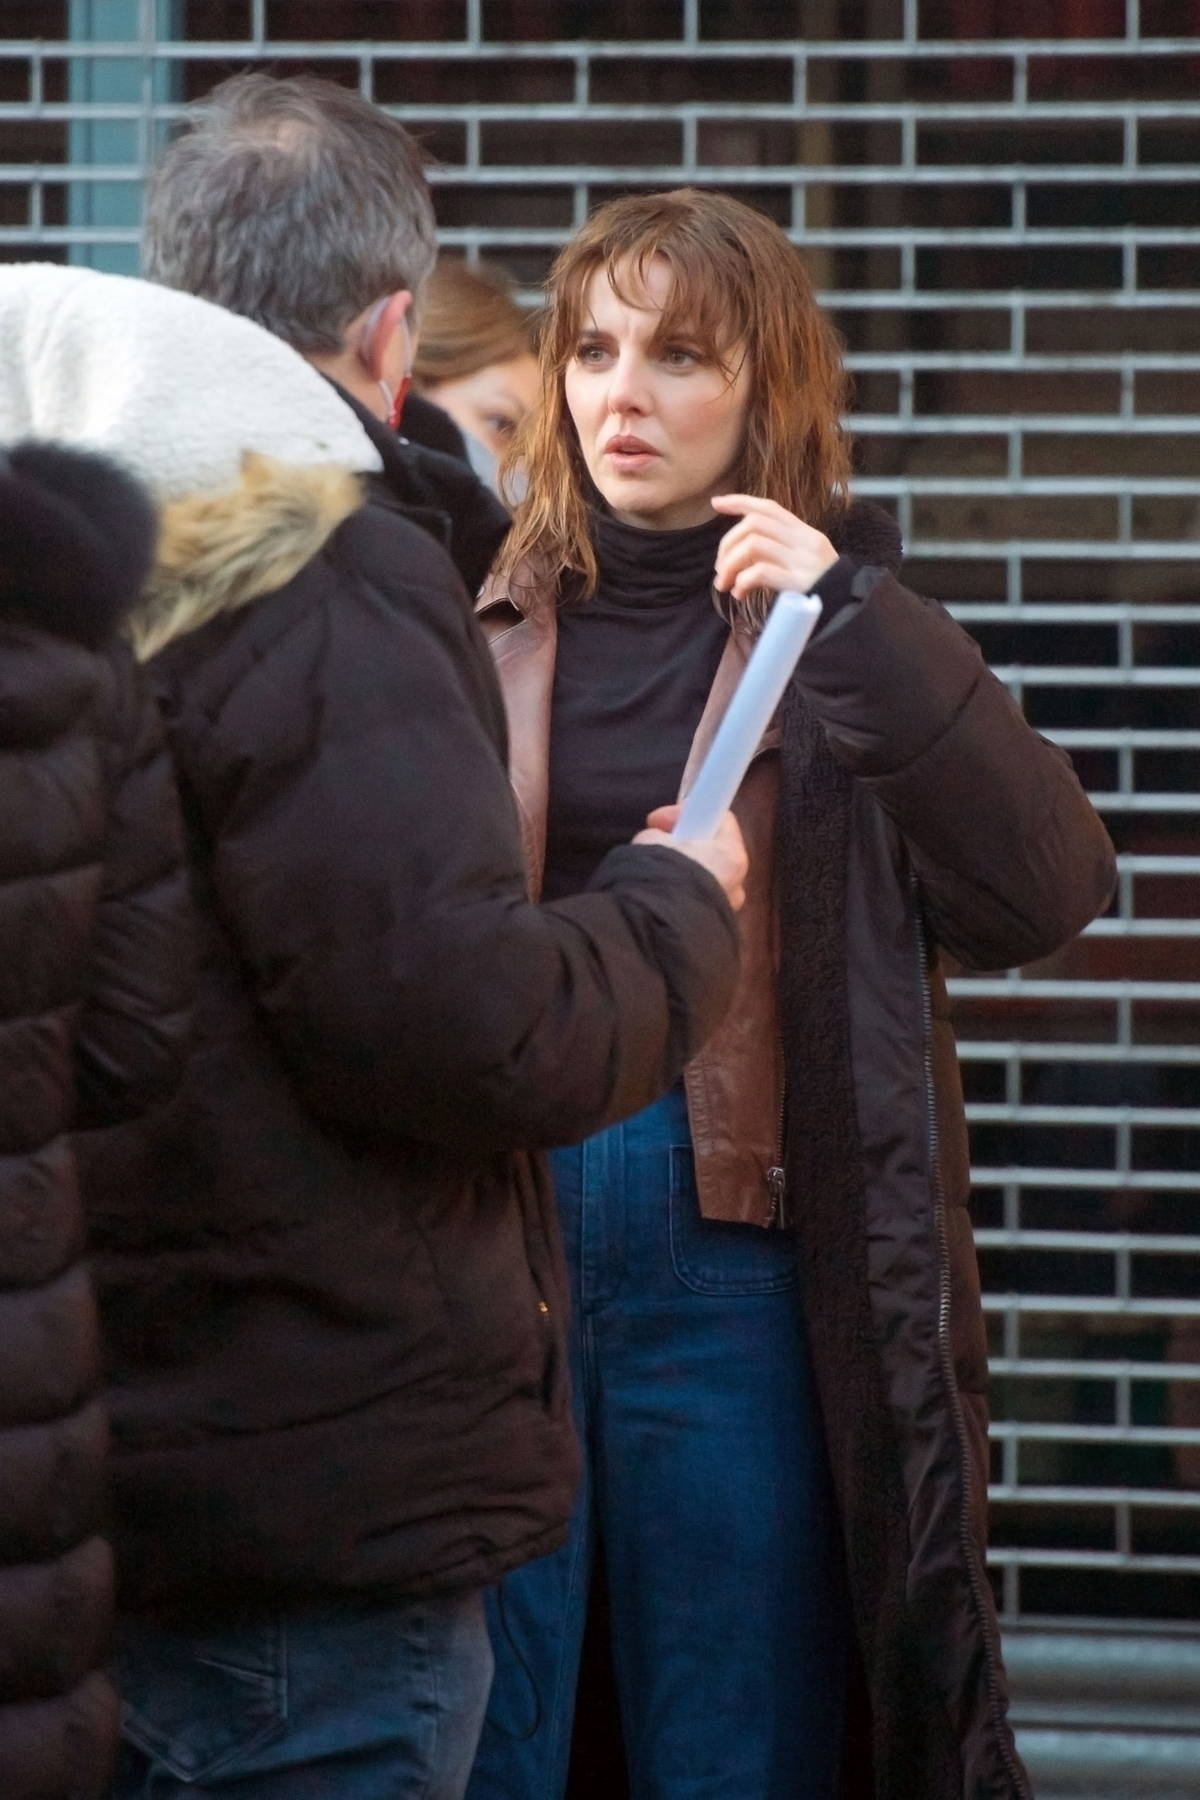 Ophelia Lovibond seen filming scenes for her new series 'Princess' in Belsize Park in London, UK